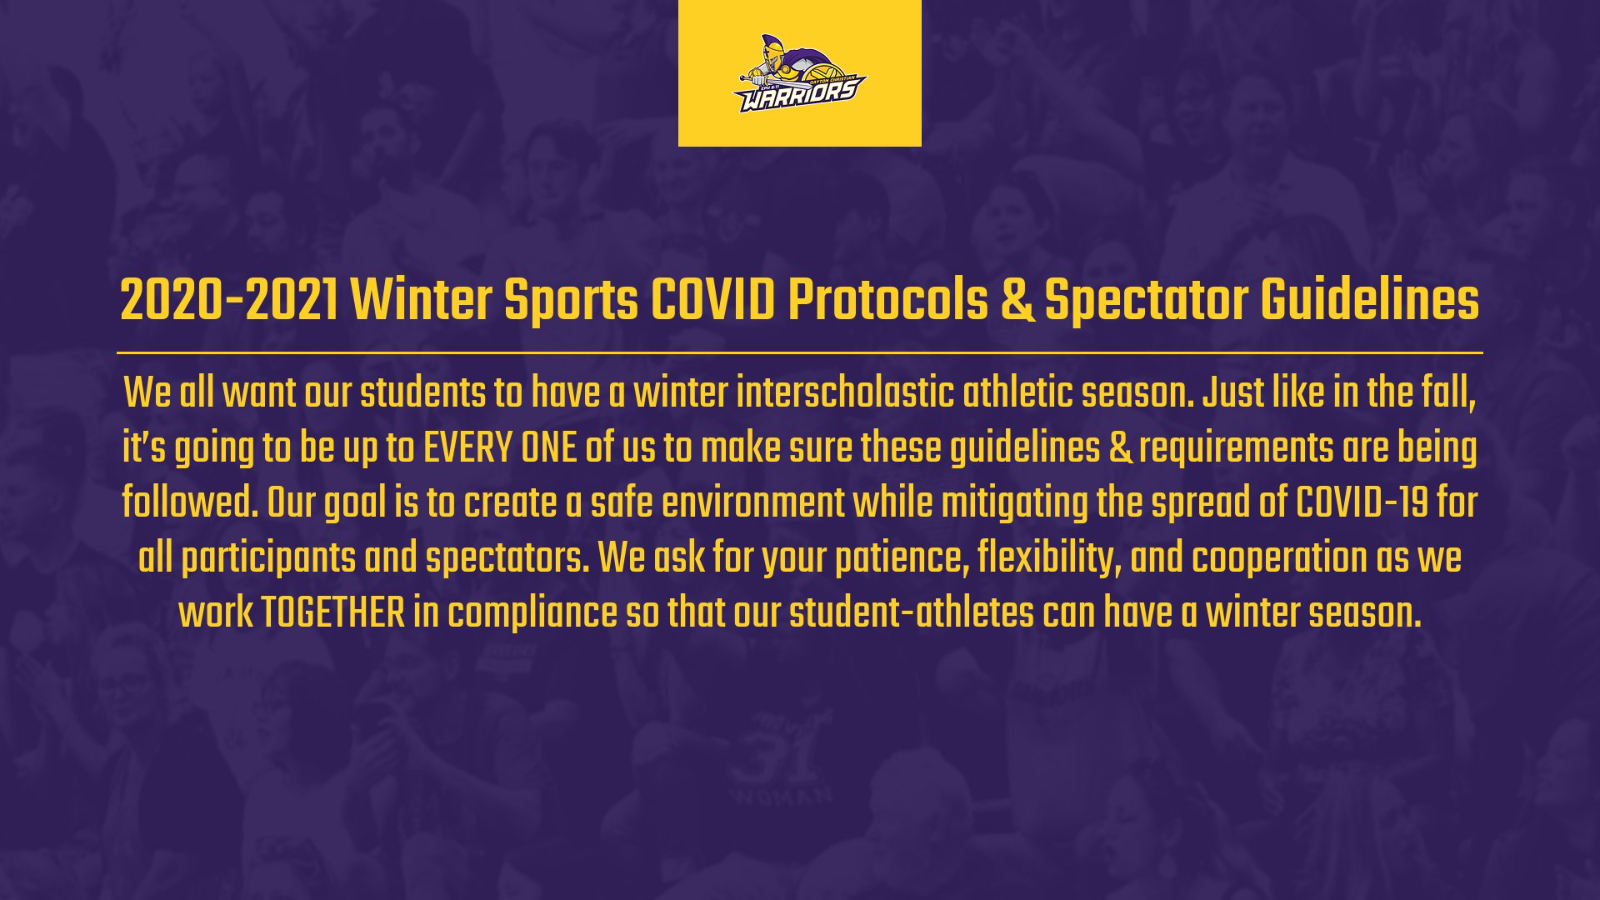 2020-2021 Winter Sports COVID Protocols, Spectator Guidelines & Ticketing Procedures